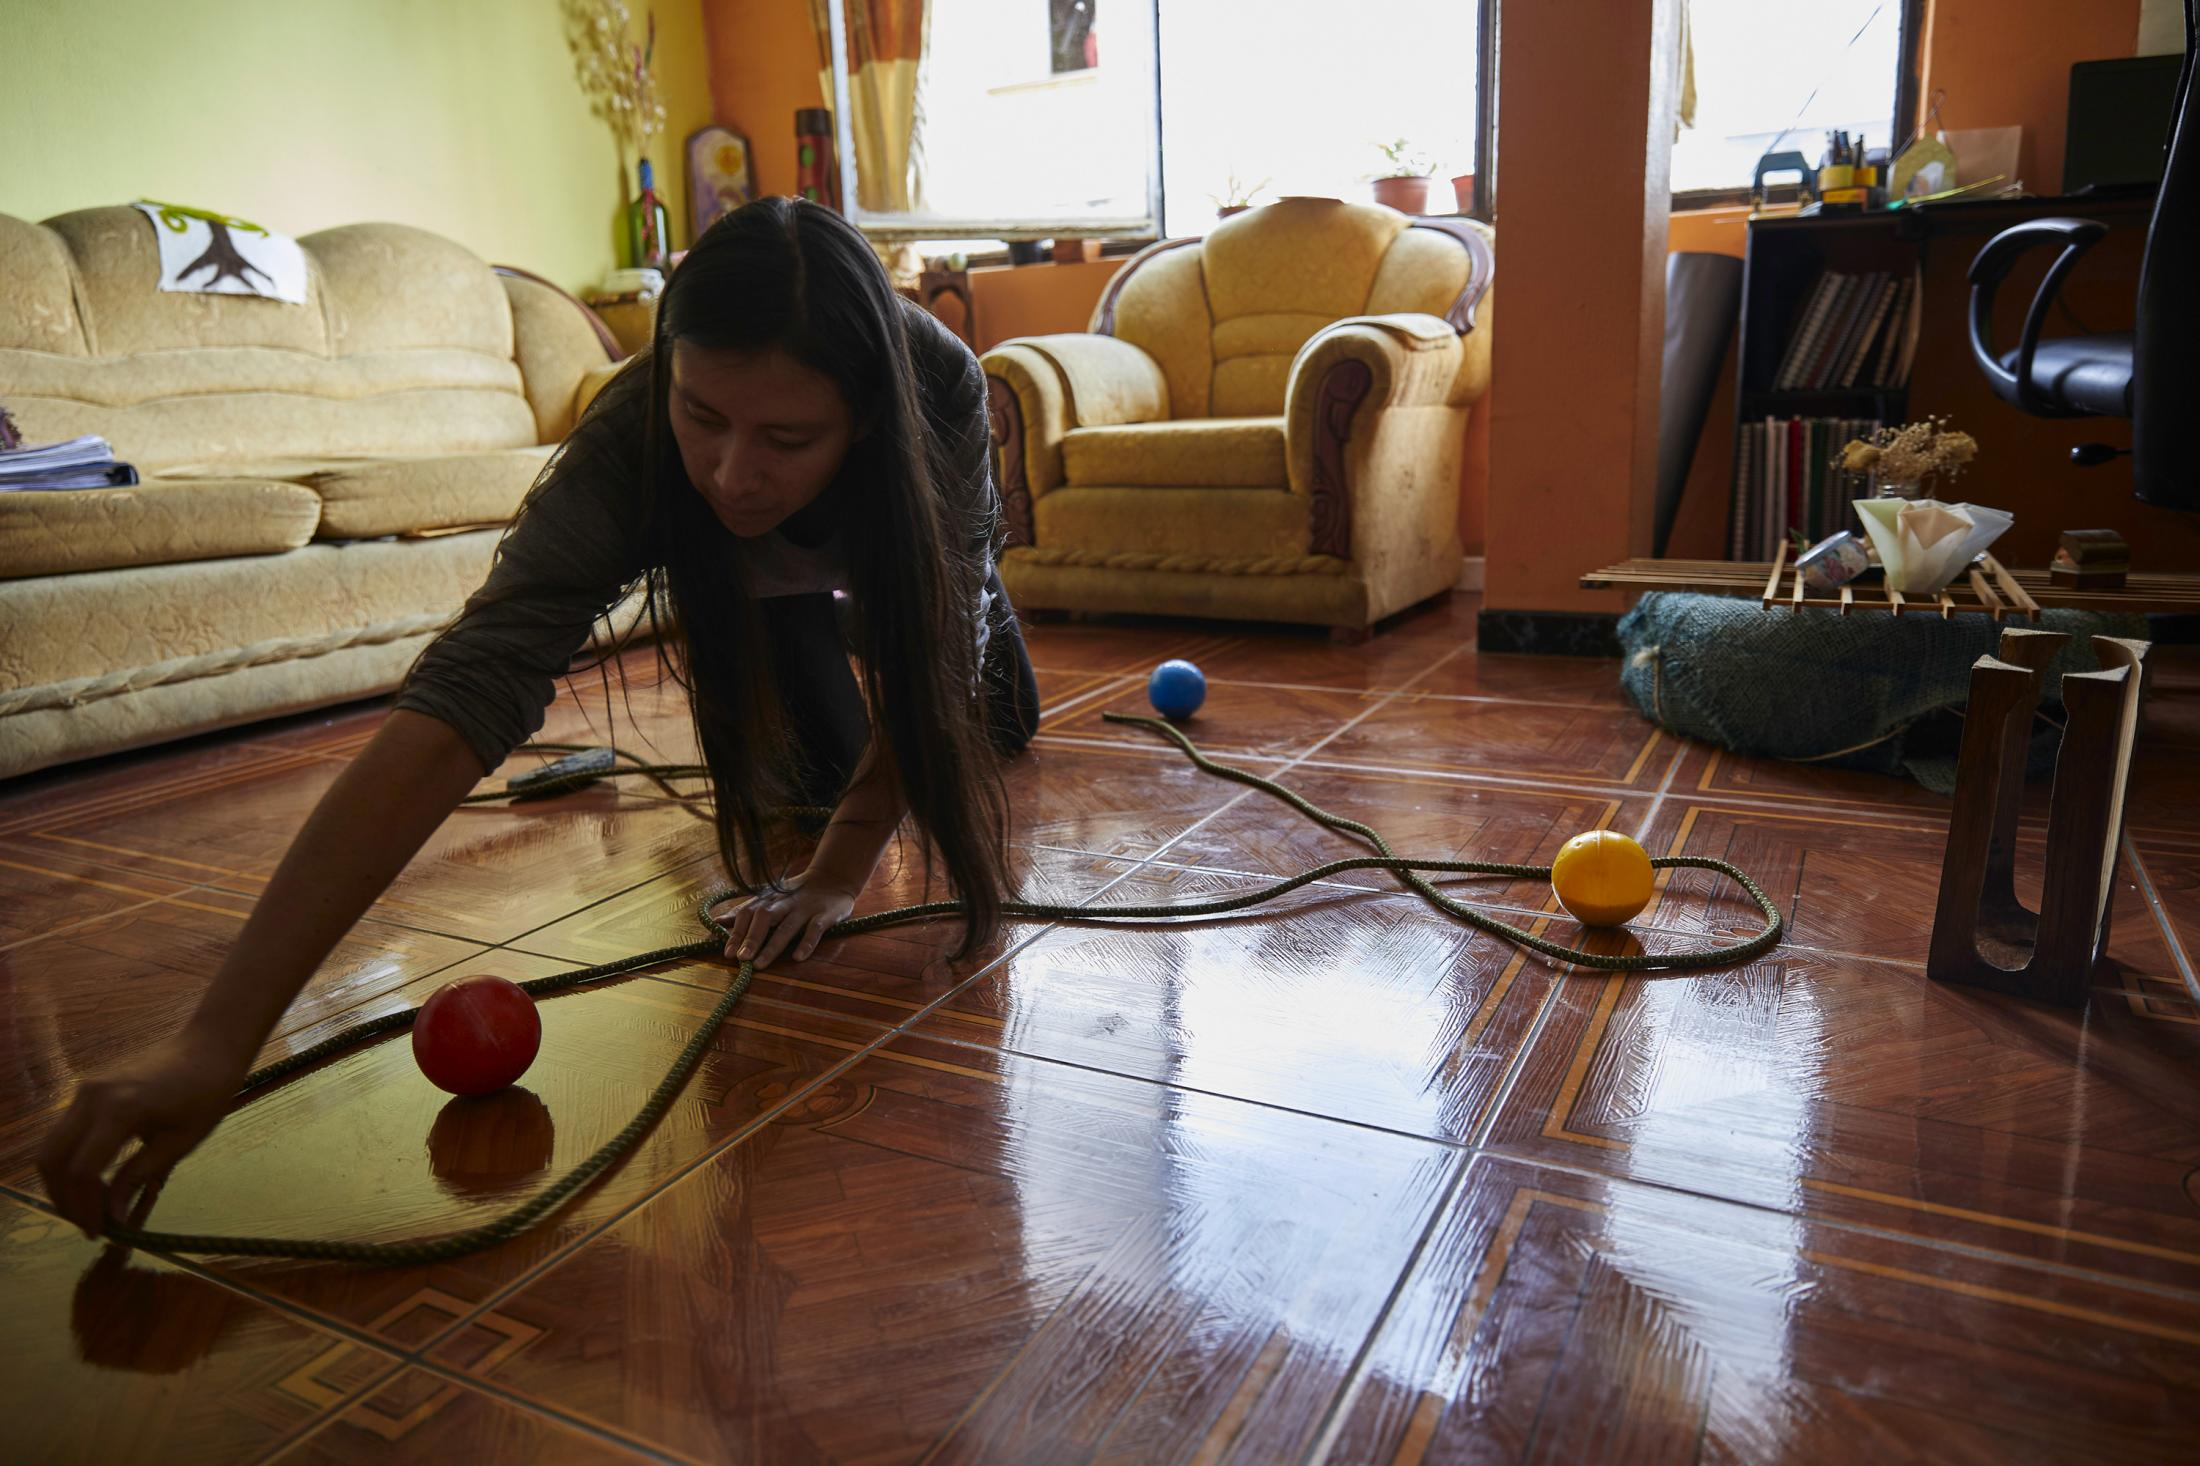 Shape drawing, introduced by Rudolf Steiner, is an important foundation of Waldorf pedagogy for children's development. Gabriela Chacha prepares and records different activities so students can continue with this work. Conocoto, Ecuador.